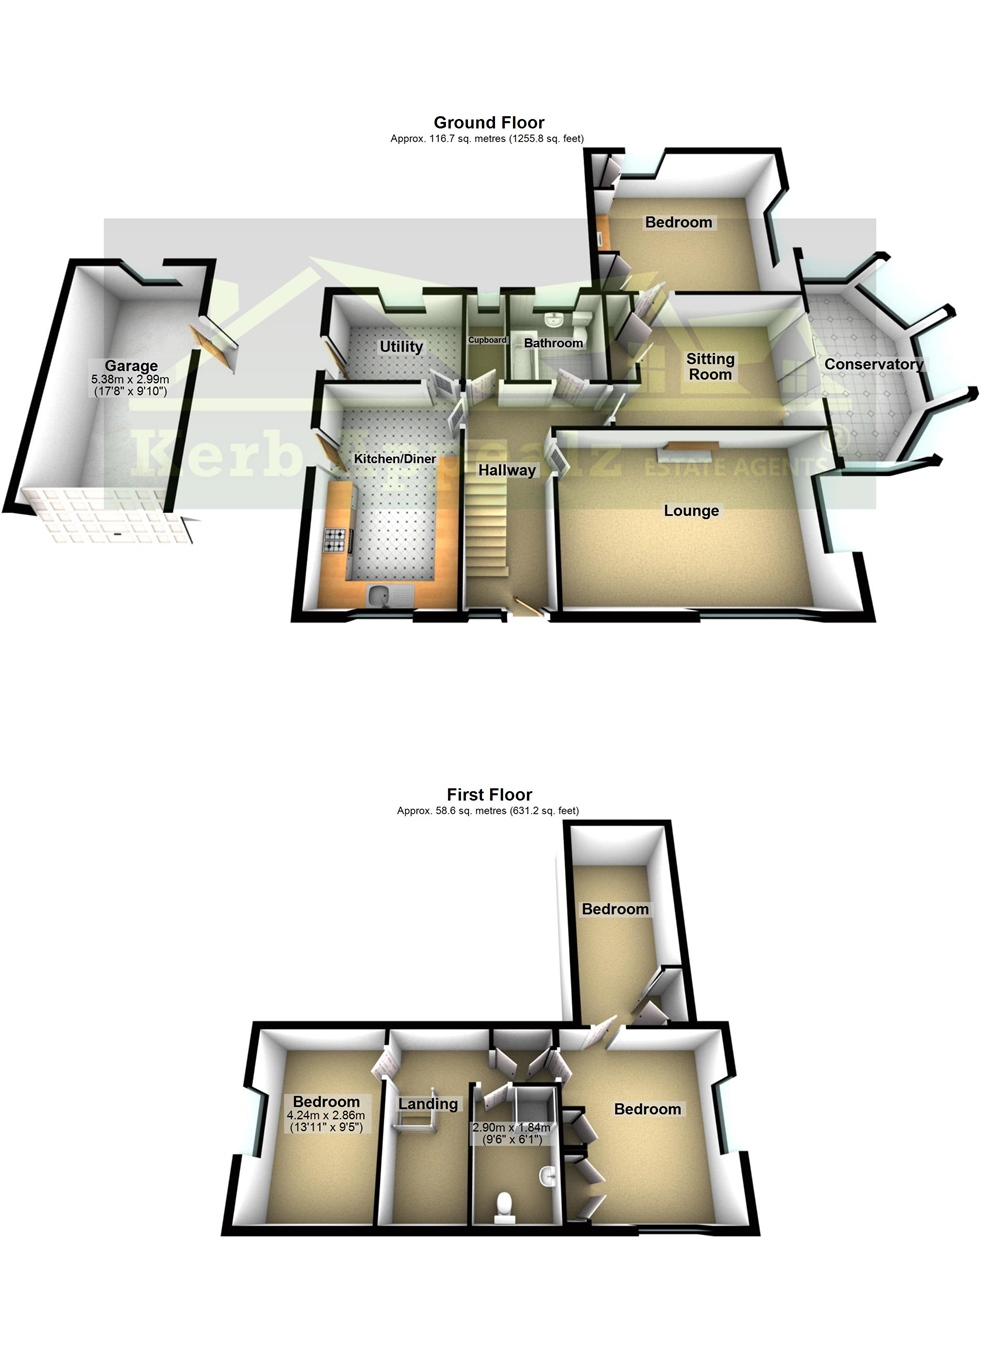 Floorplan 1 of  for sale in Lelant